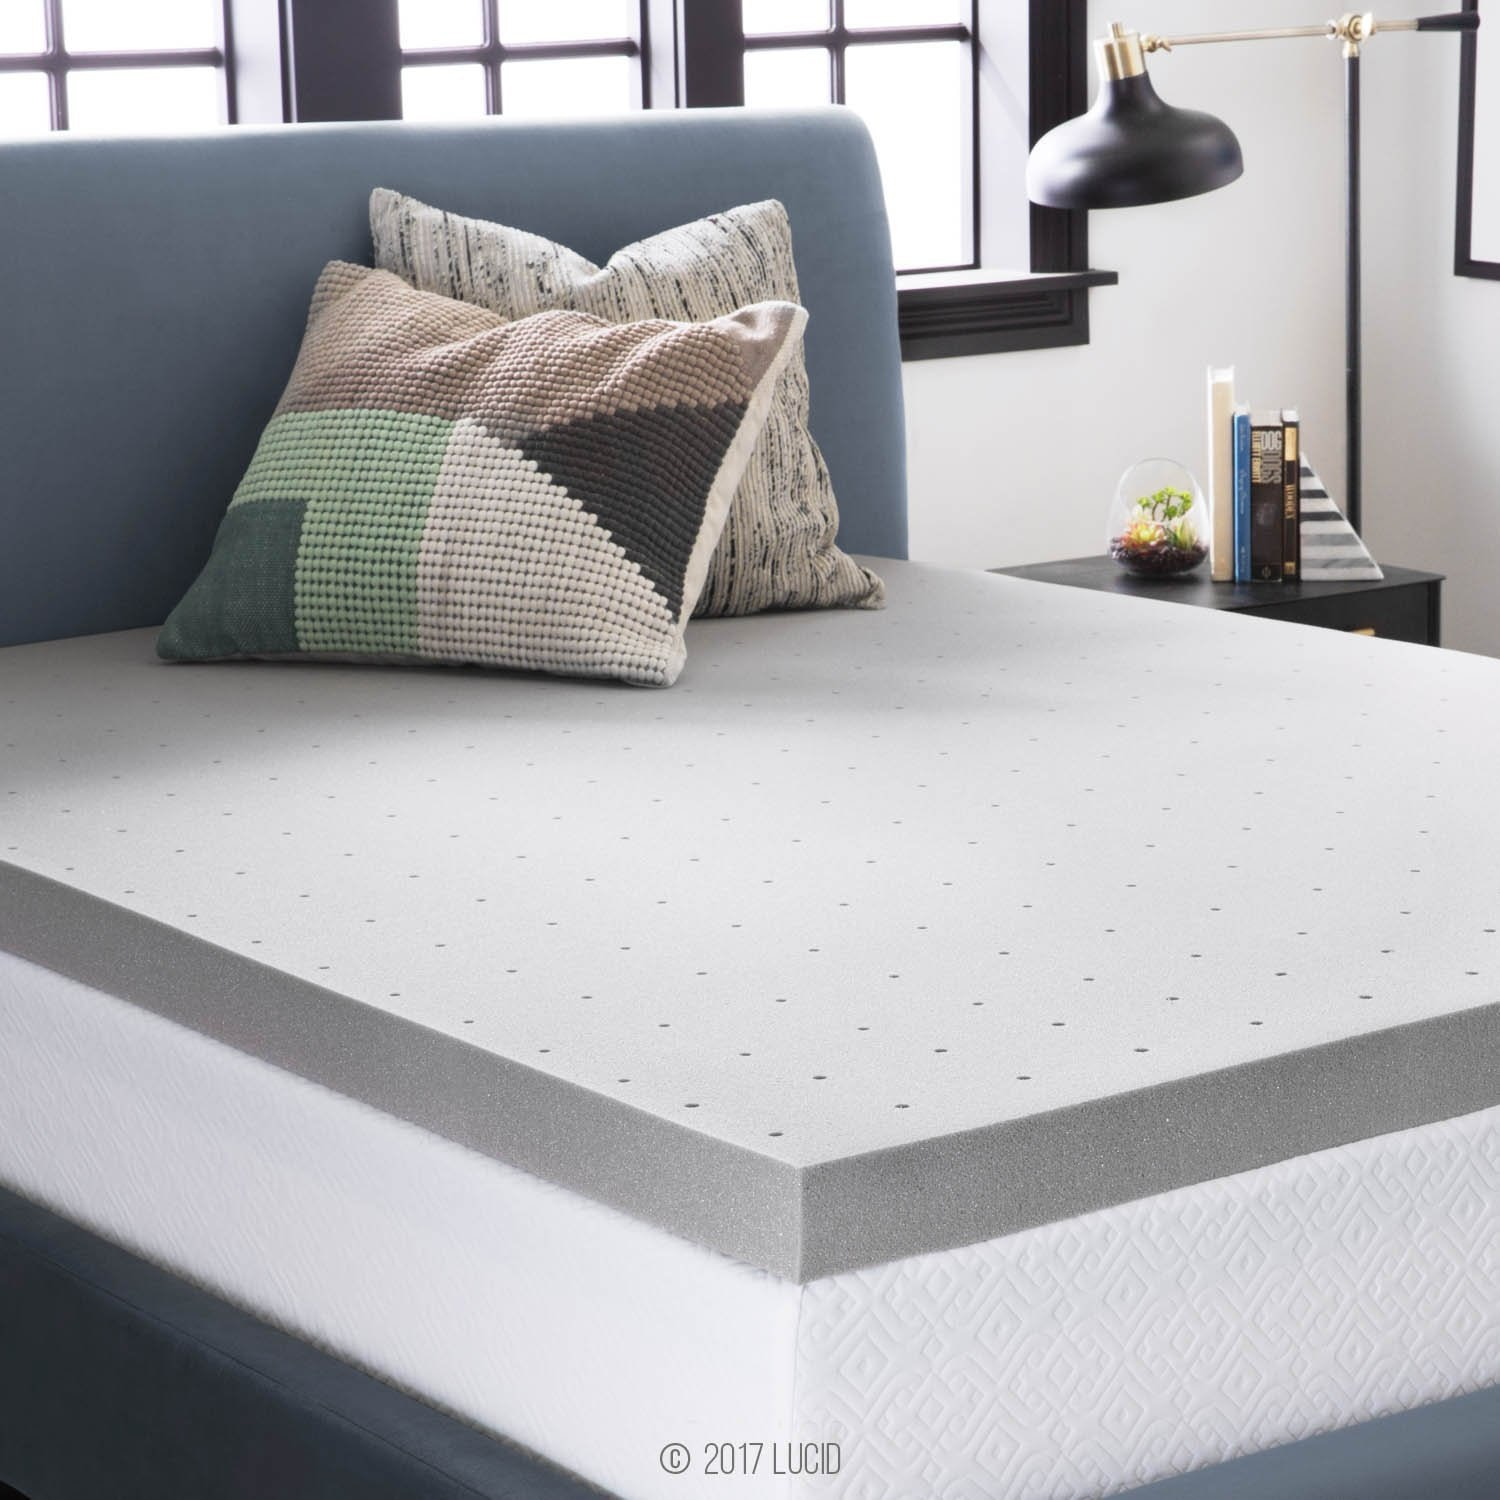 which vs better is mattress cool topper to use pad